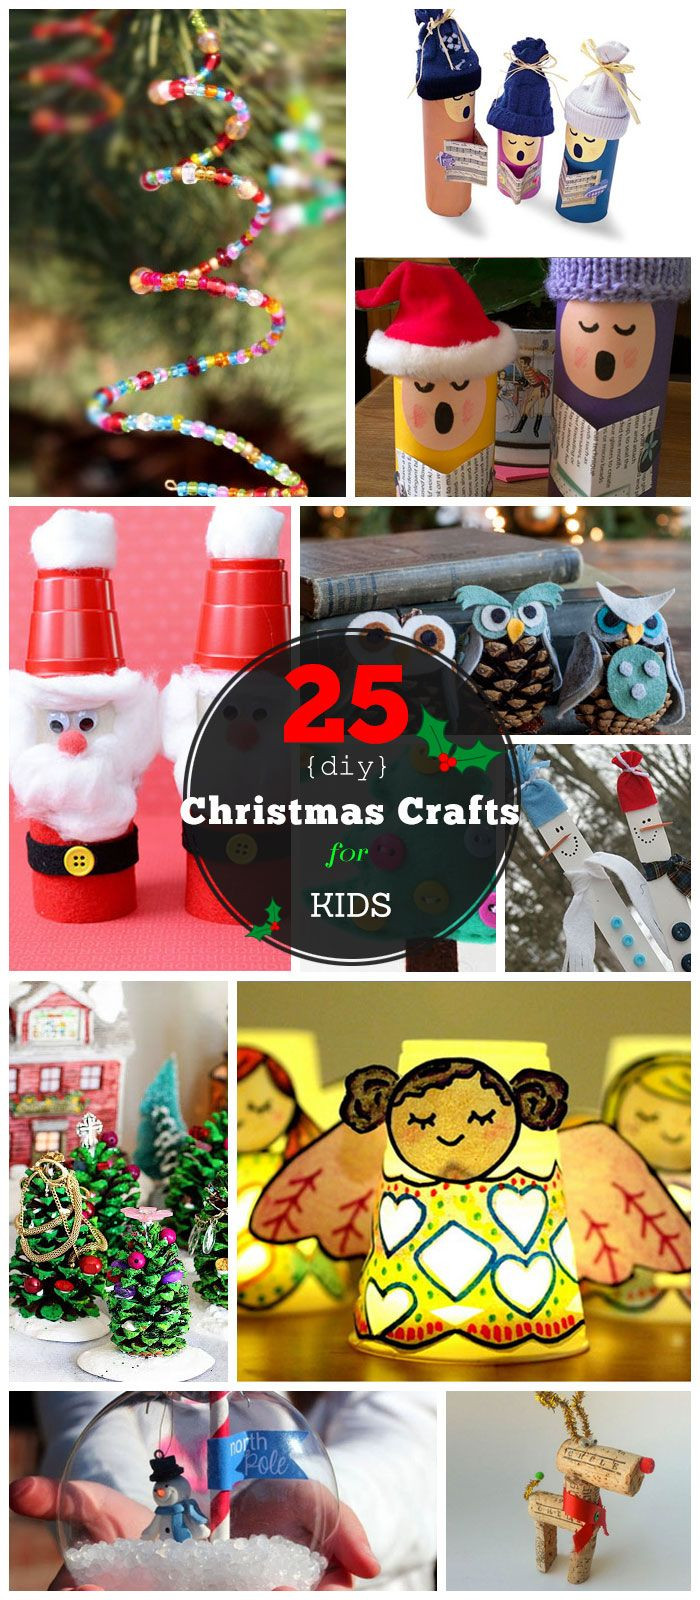 Best ideas about DIY Christmas Craft For Kids . Save or Pin 30 Christmas Crafts For Kids to Make DIY Now.